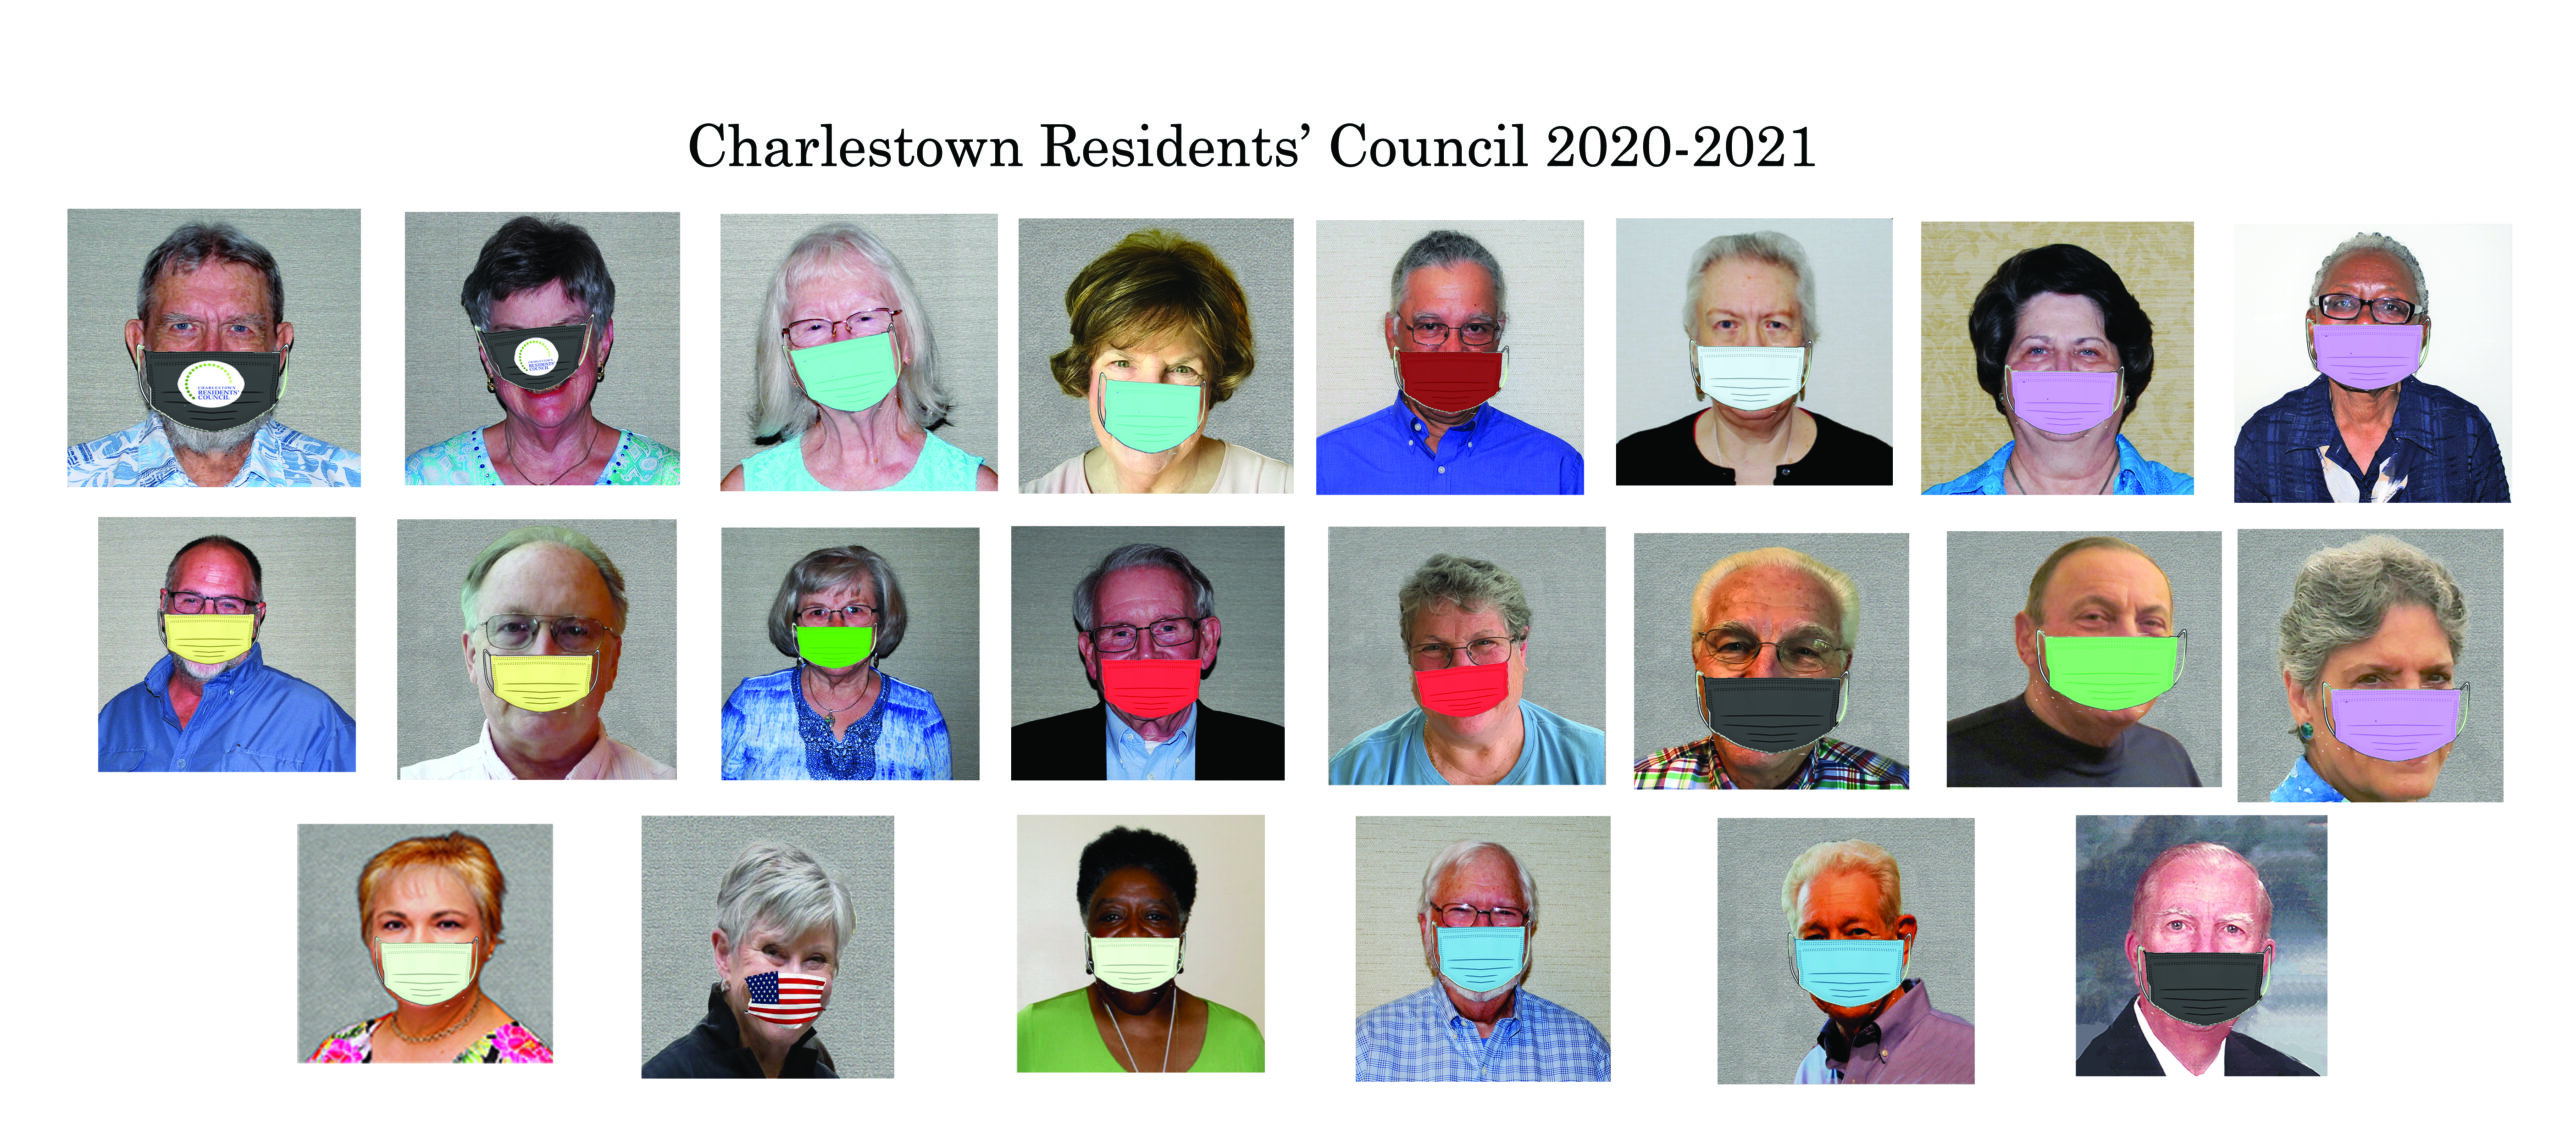 RC 2020-2021 Council recommends you wear mask